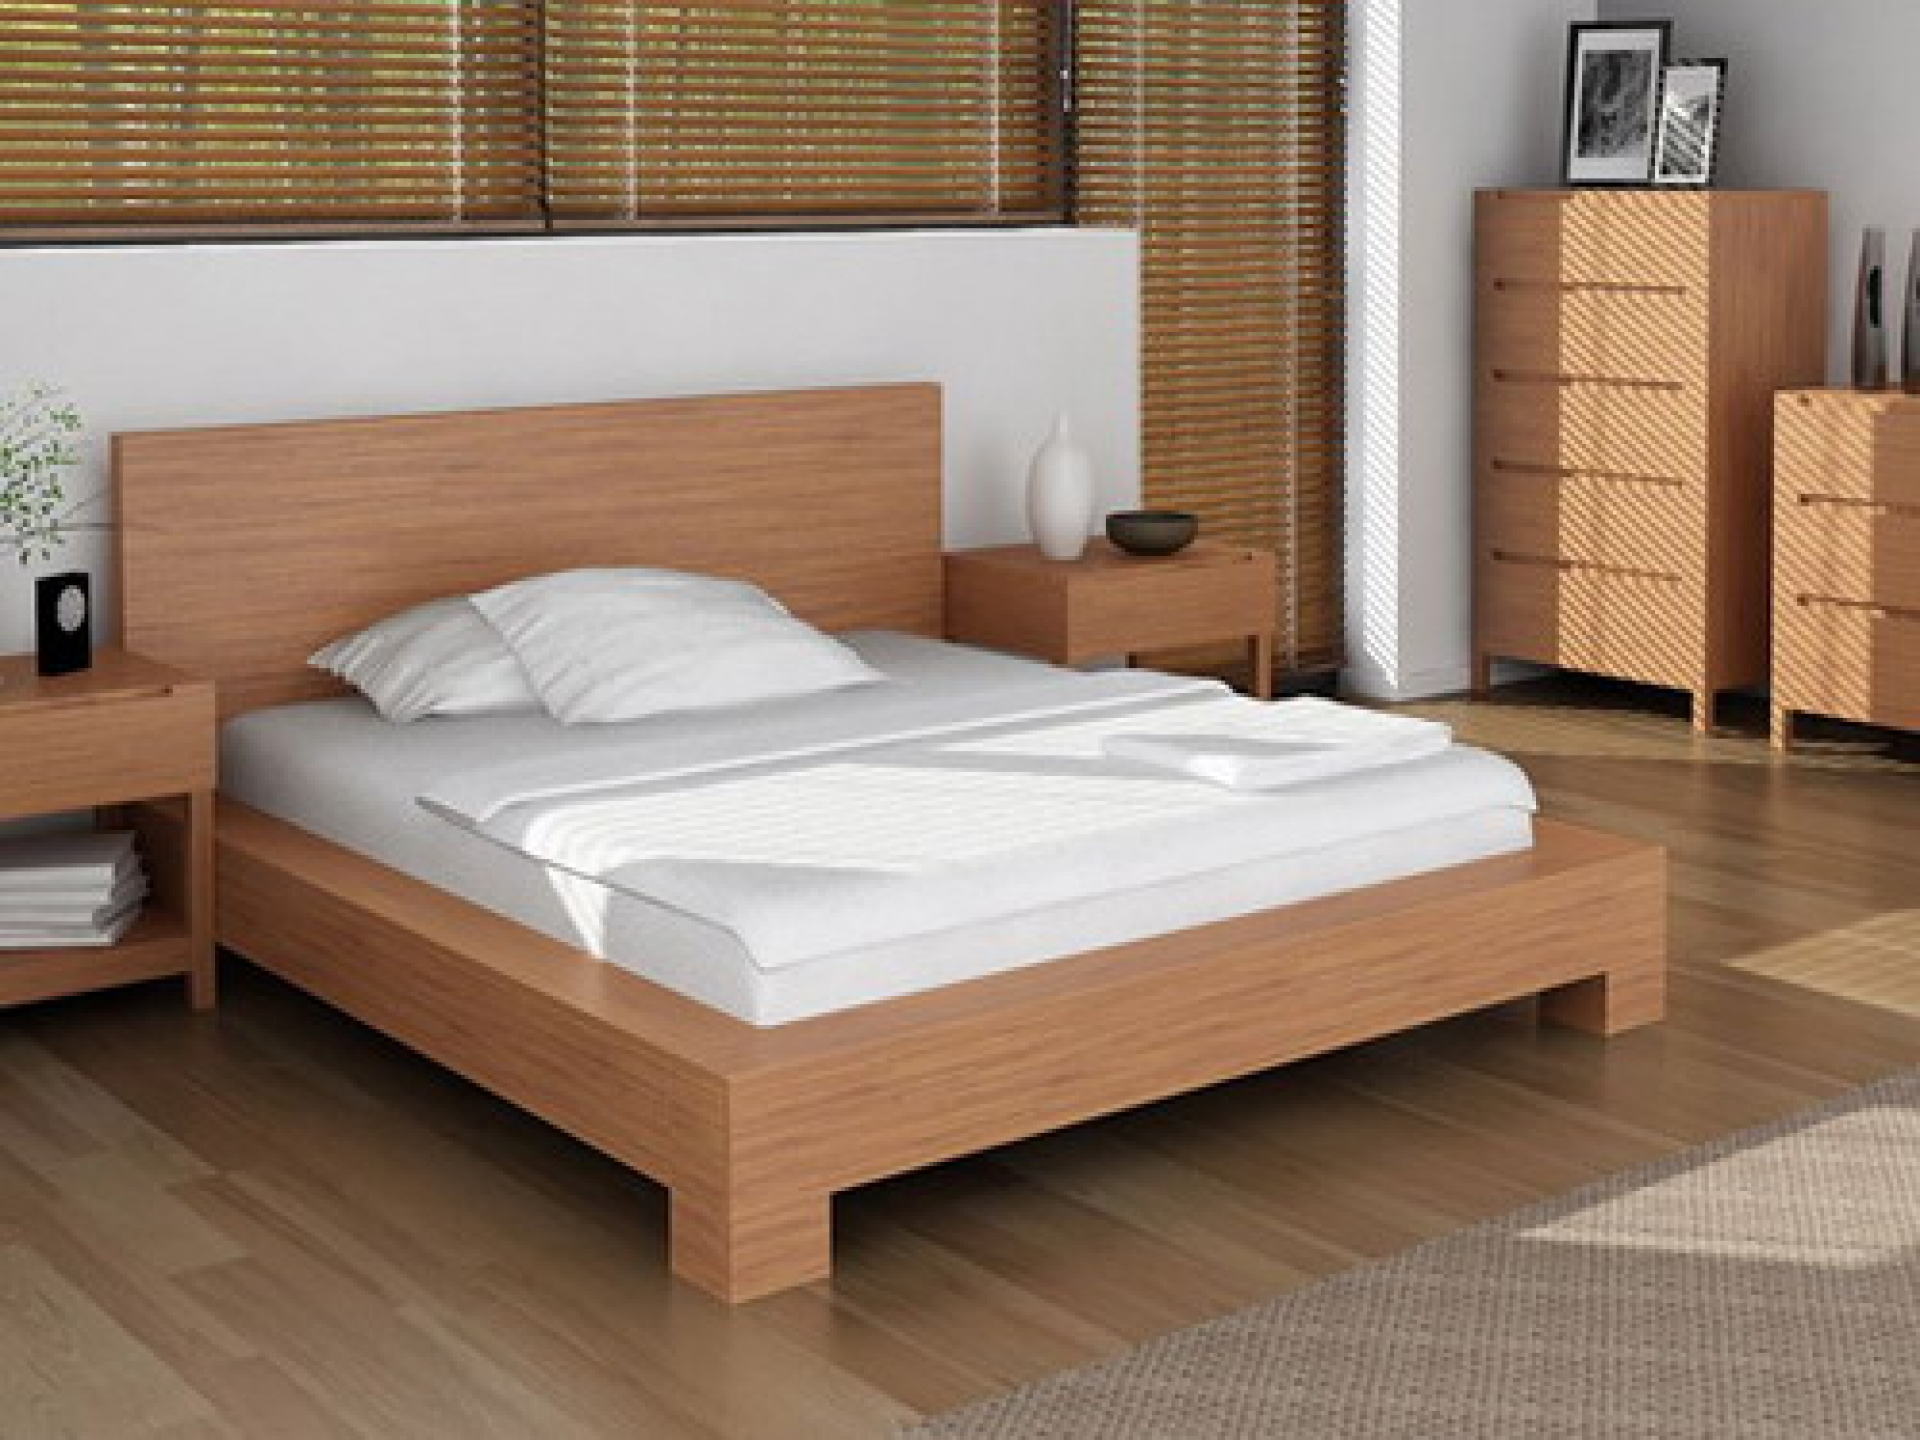 Cheap Wooden Bed Frames Simple Wood Bed Frame Ideas Homesfeed